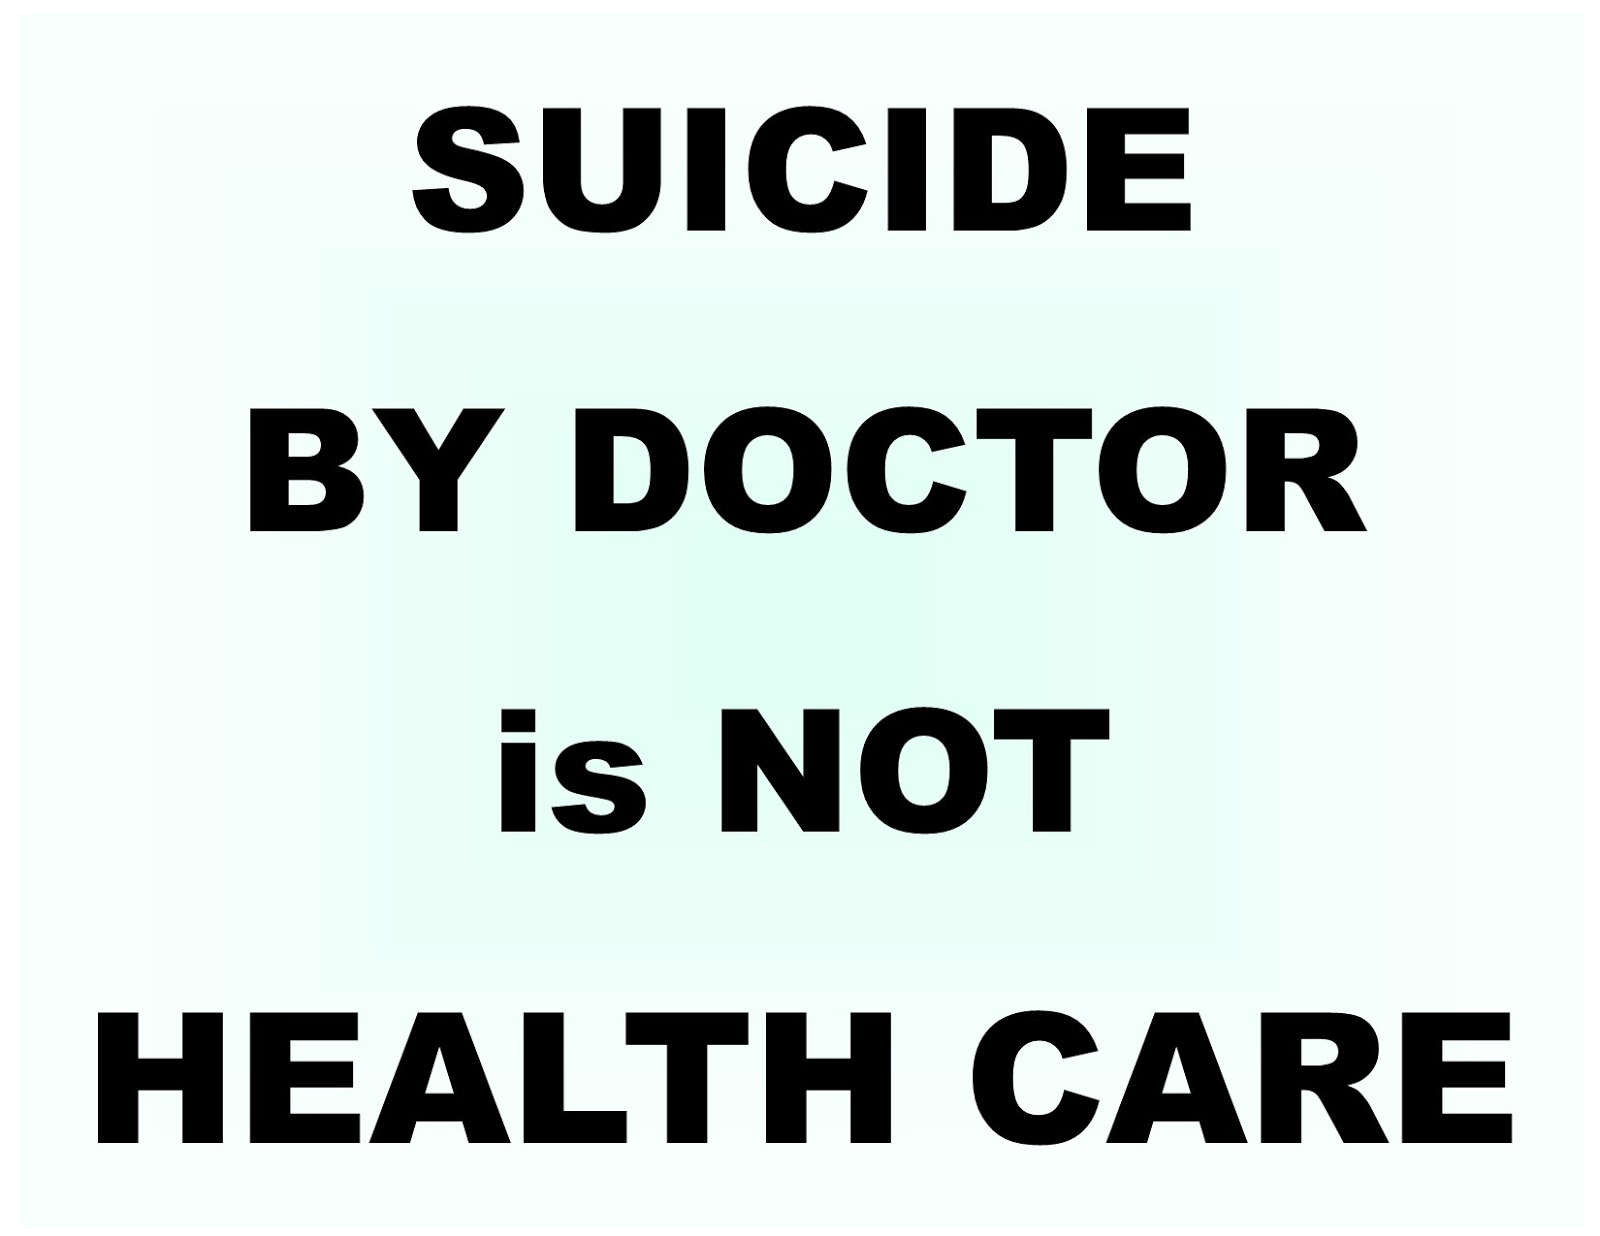 euthanasia prevention coalition euthanasia prevention coalition  healthy w who dies by assisted suicide in switzerland was likely depressed